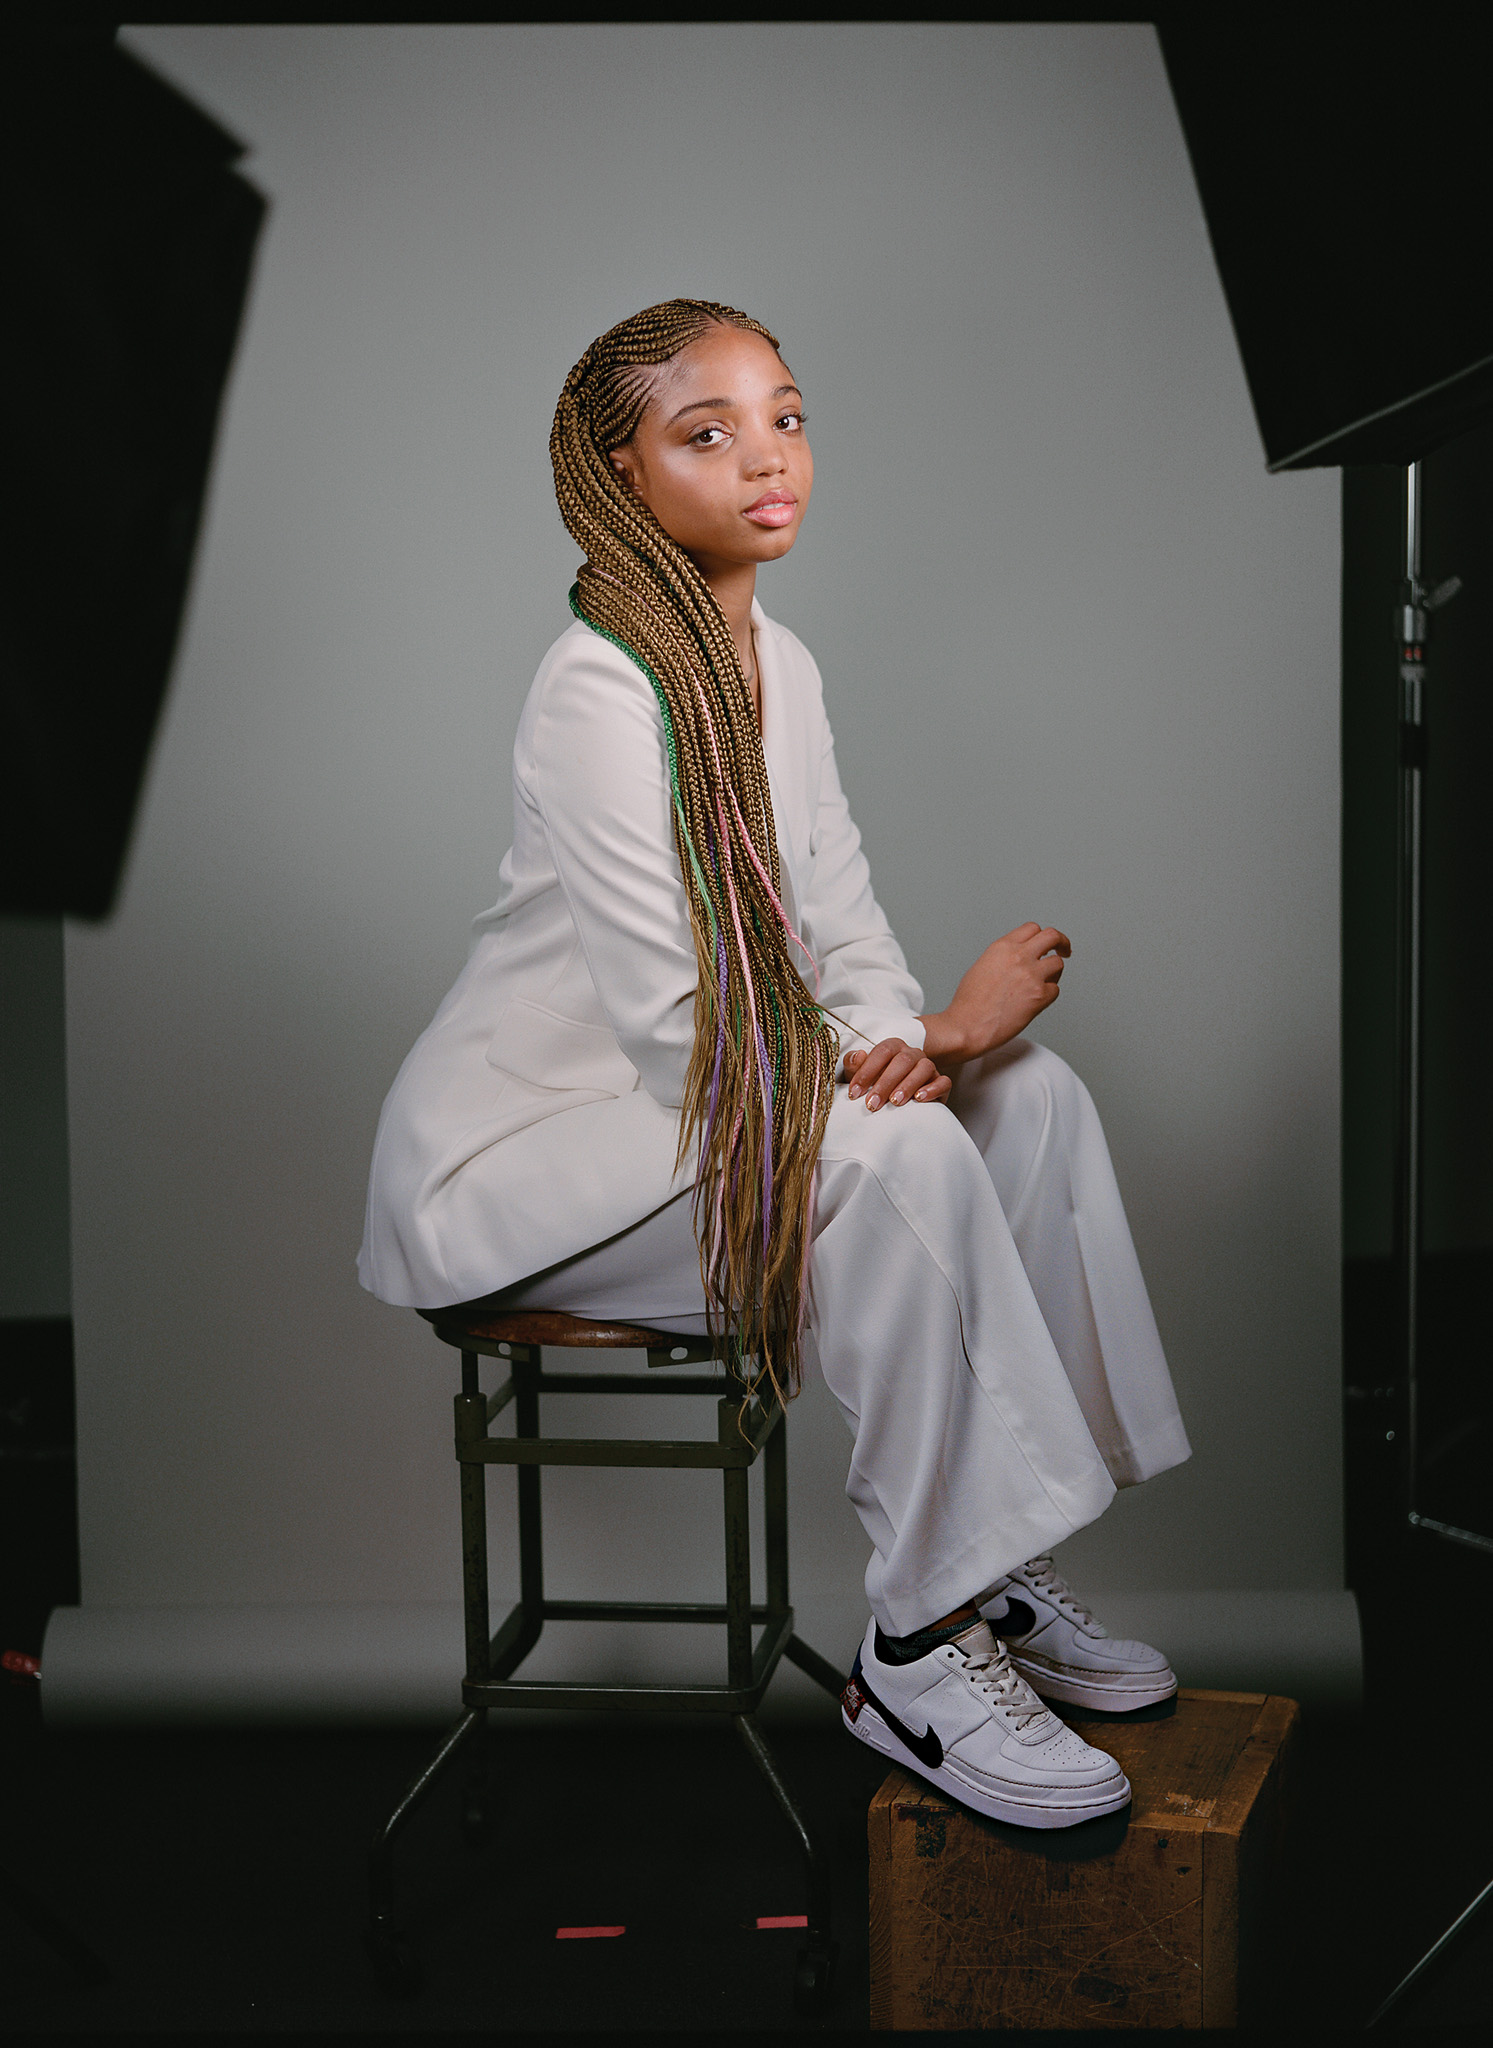 Picture of a woman with long blond braids sitting for a portrait